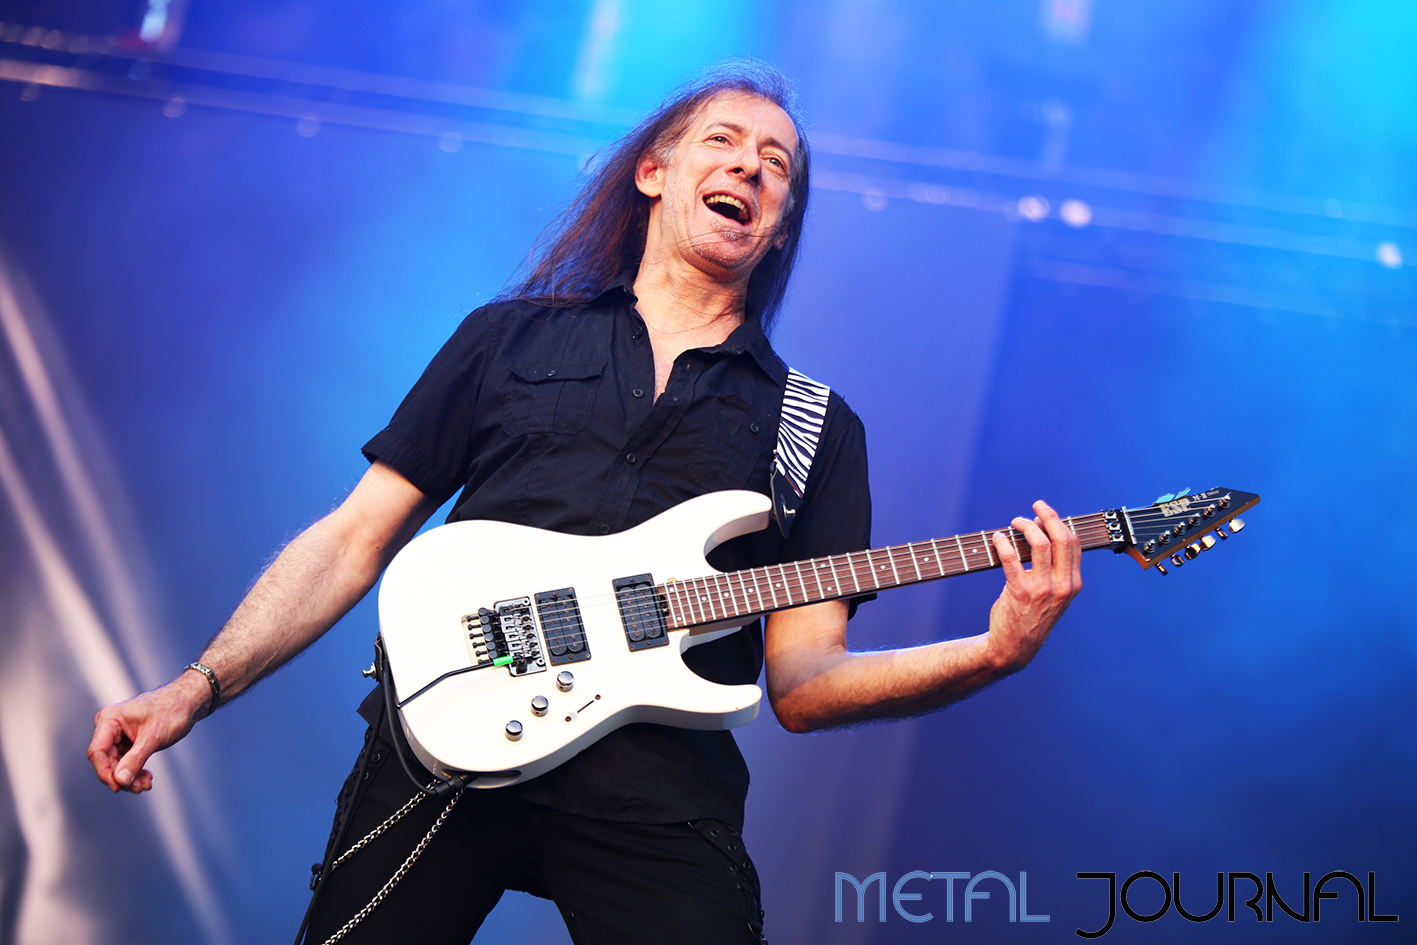 gamma ray - metal journal rock fest barcelona 2019 pic 3